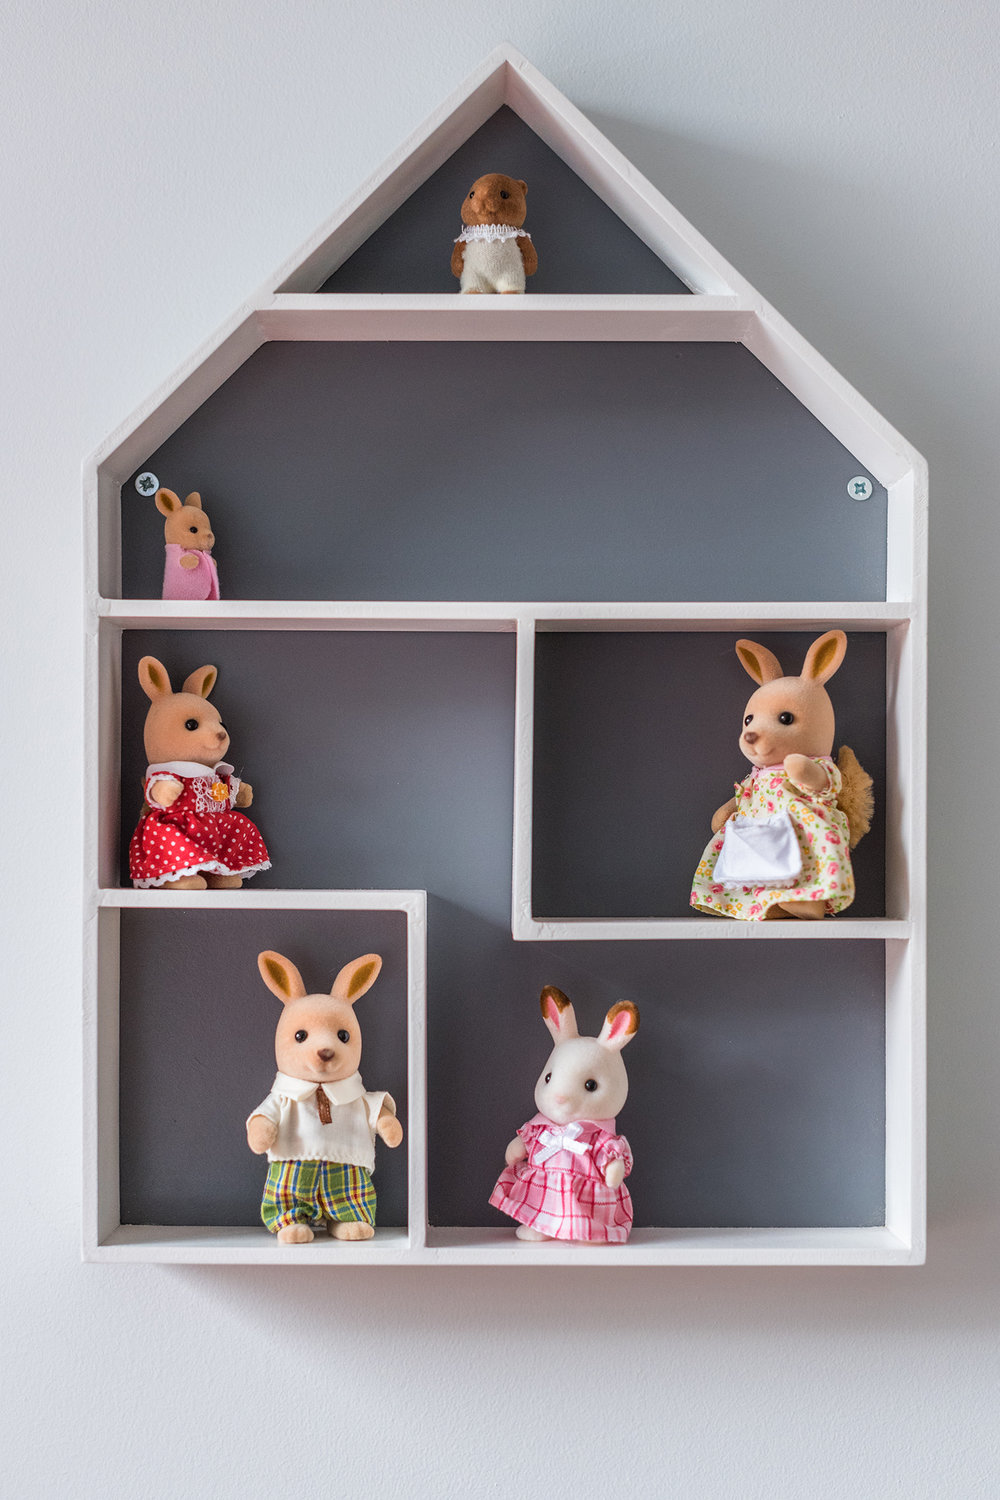 This wall house was an inexpensive find from Sainsburys. It is fixed to the wall close to the childs bed, providing her with lots of imaginary playtime and freeing up floor space.